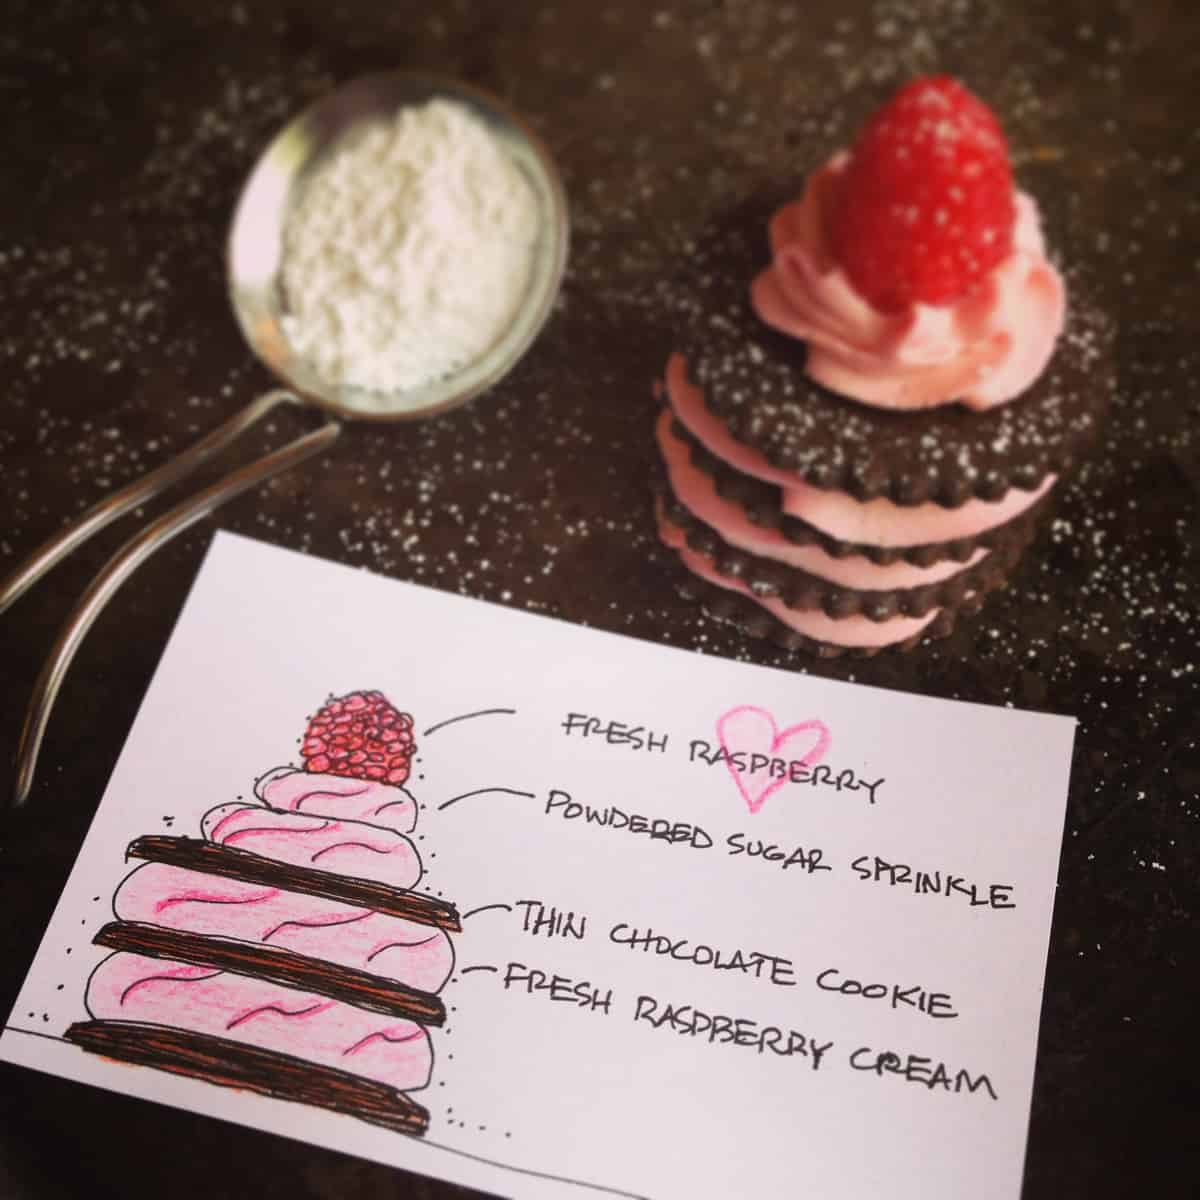 Chocolate and Fresh Raspberry Cream Napoleons - afarmgirlsdabbles.com #raspberrydessert #raspberry #chocolate #dessert #joy